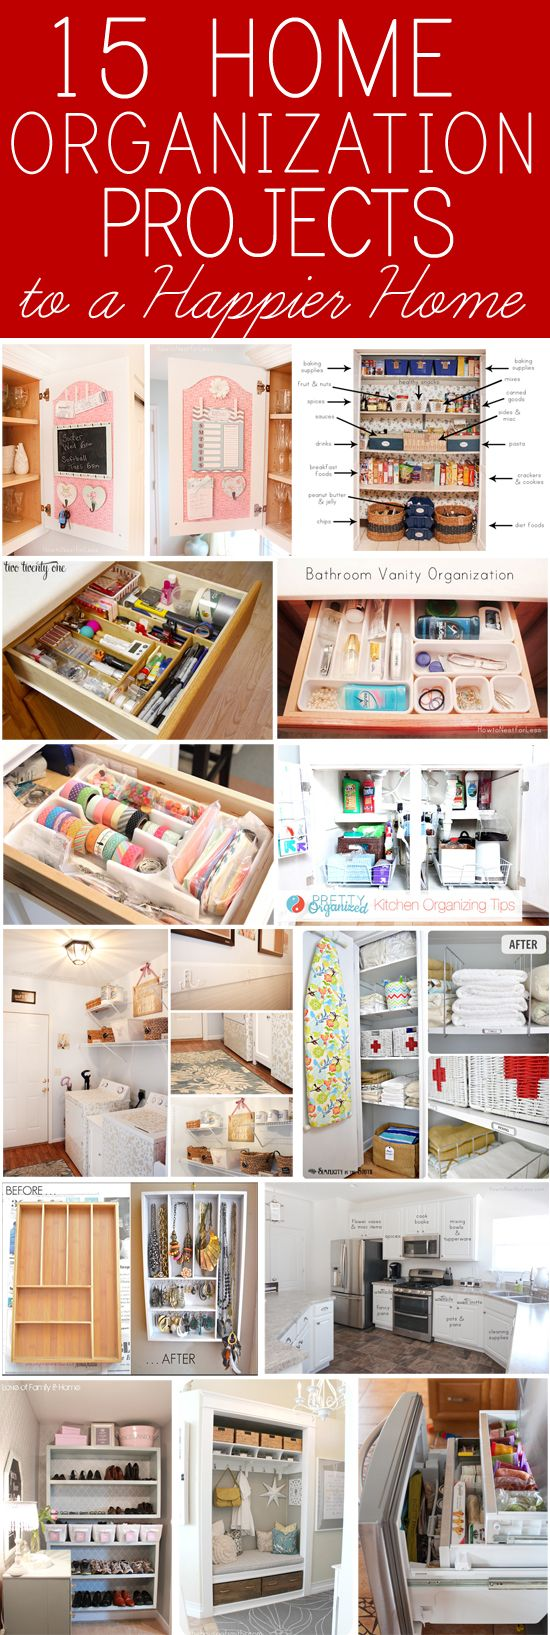 15 home organization projects!15 Organic, Jan Issues, Organic Projects, Home Organic, Organization For Home, Happy Home, Issues Howard, 15 Tricks, Home Organization